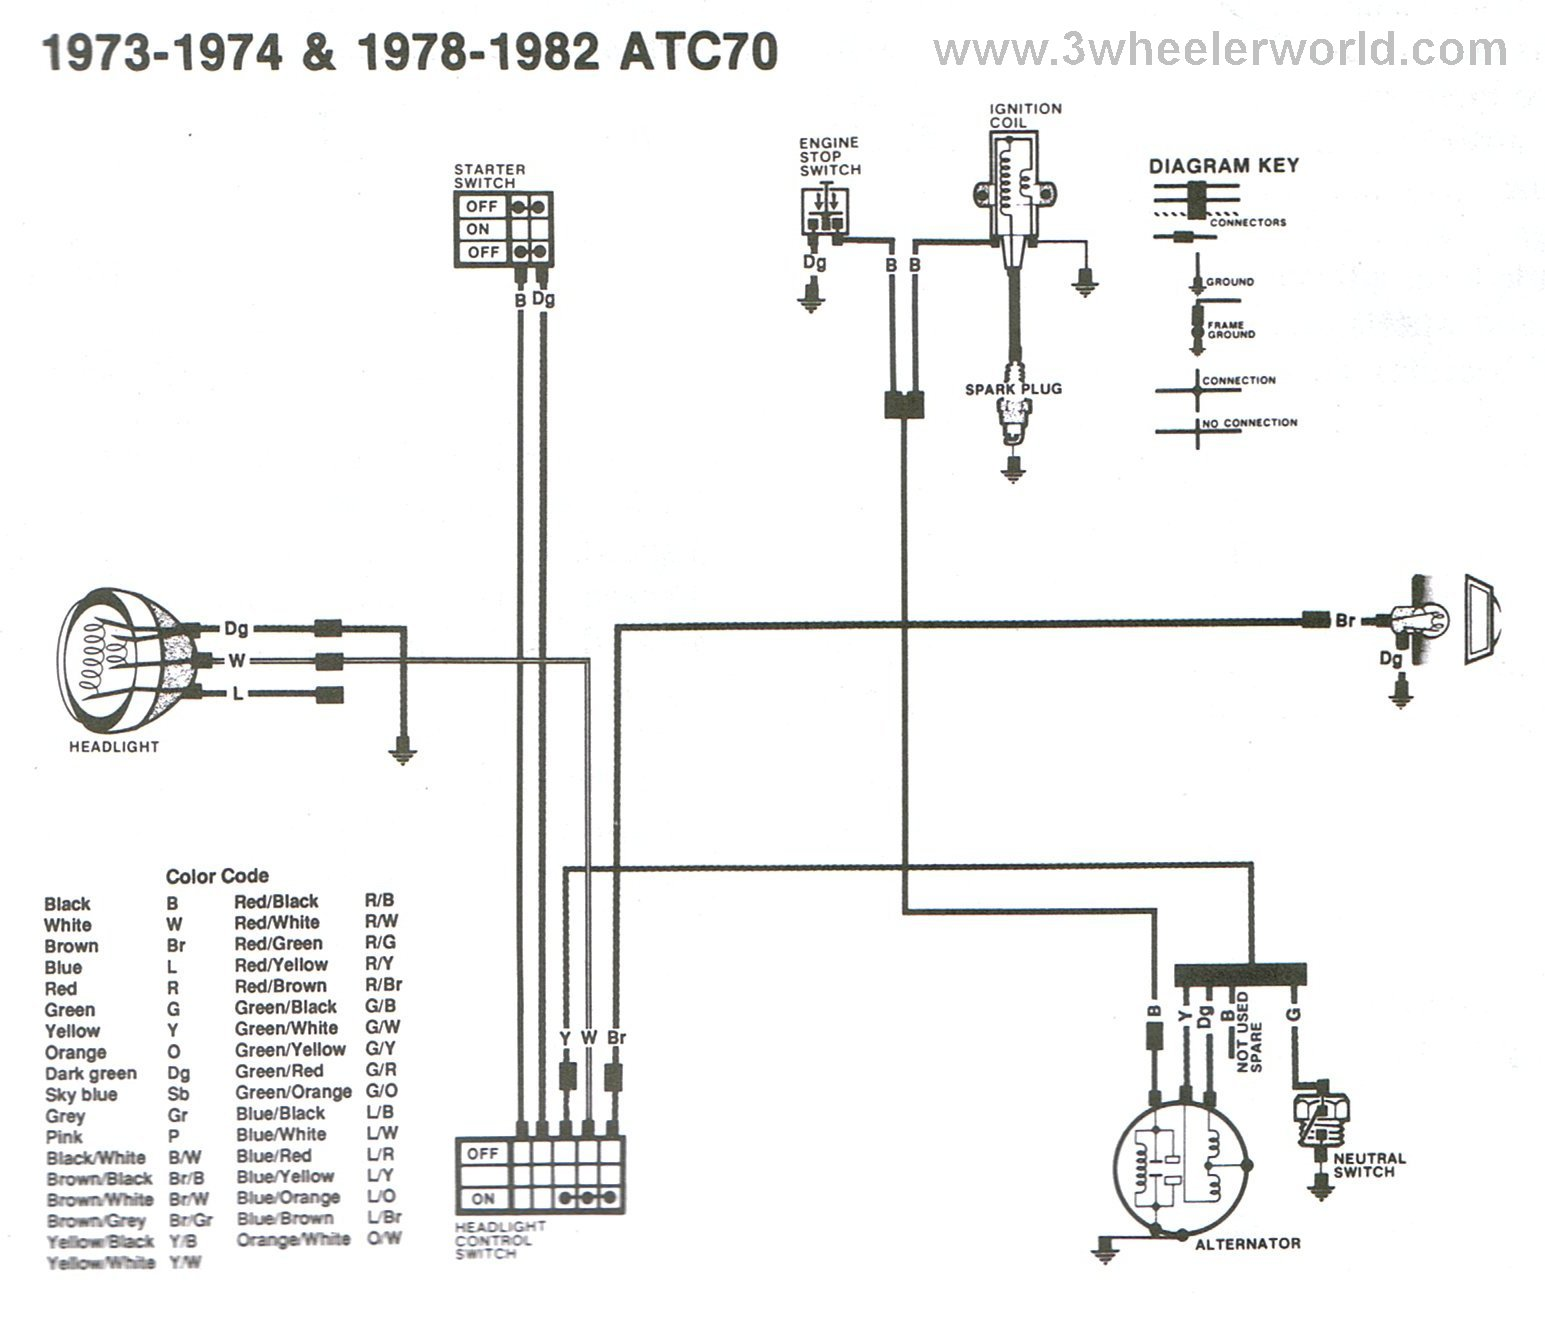 post 4946 1235948993 atc 70 wiring diagram honda 70 talk dumont dune riders atc 70 wiring diagram at webbmarketing.co